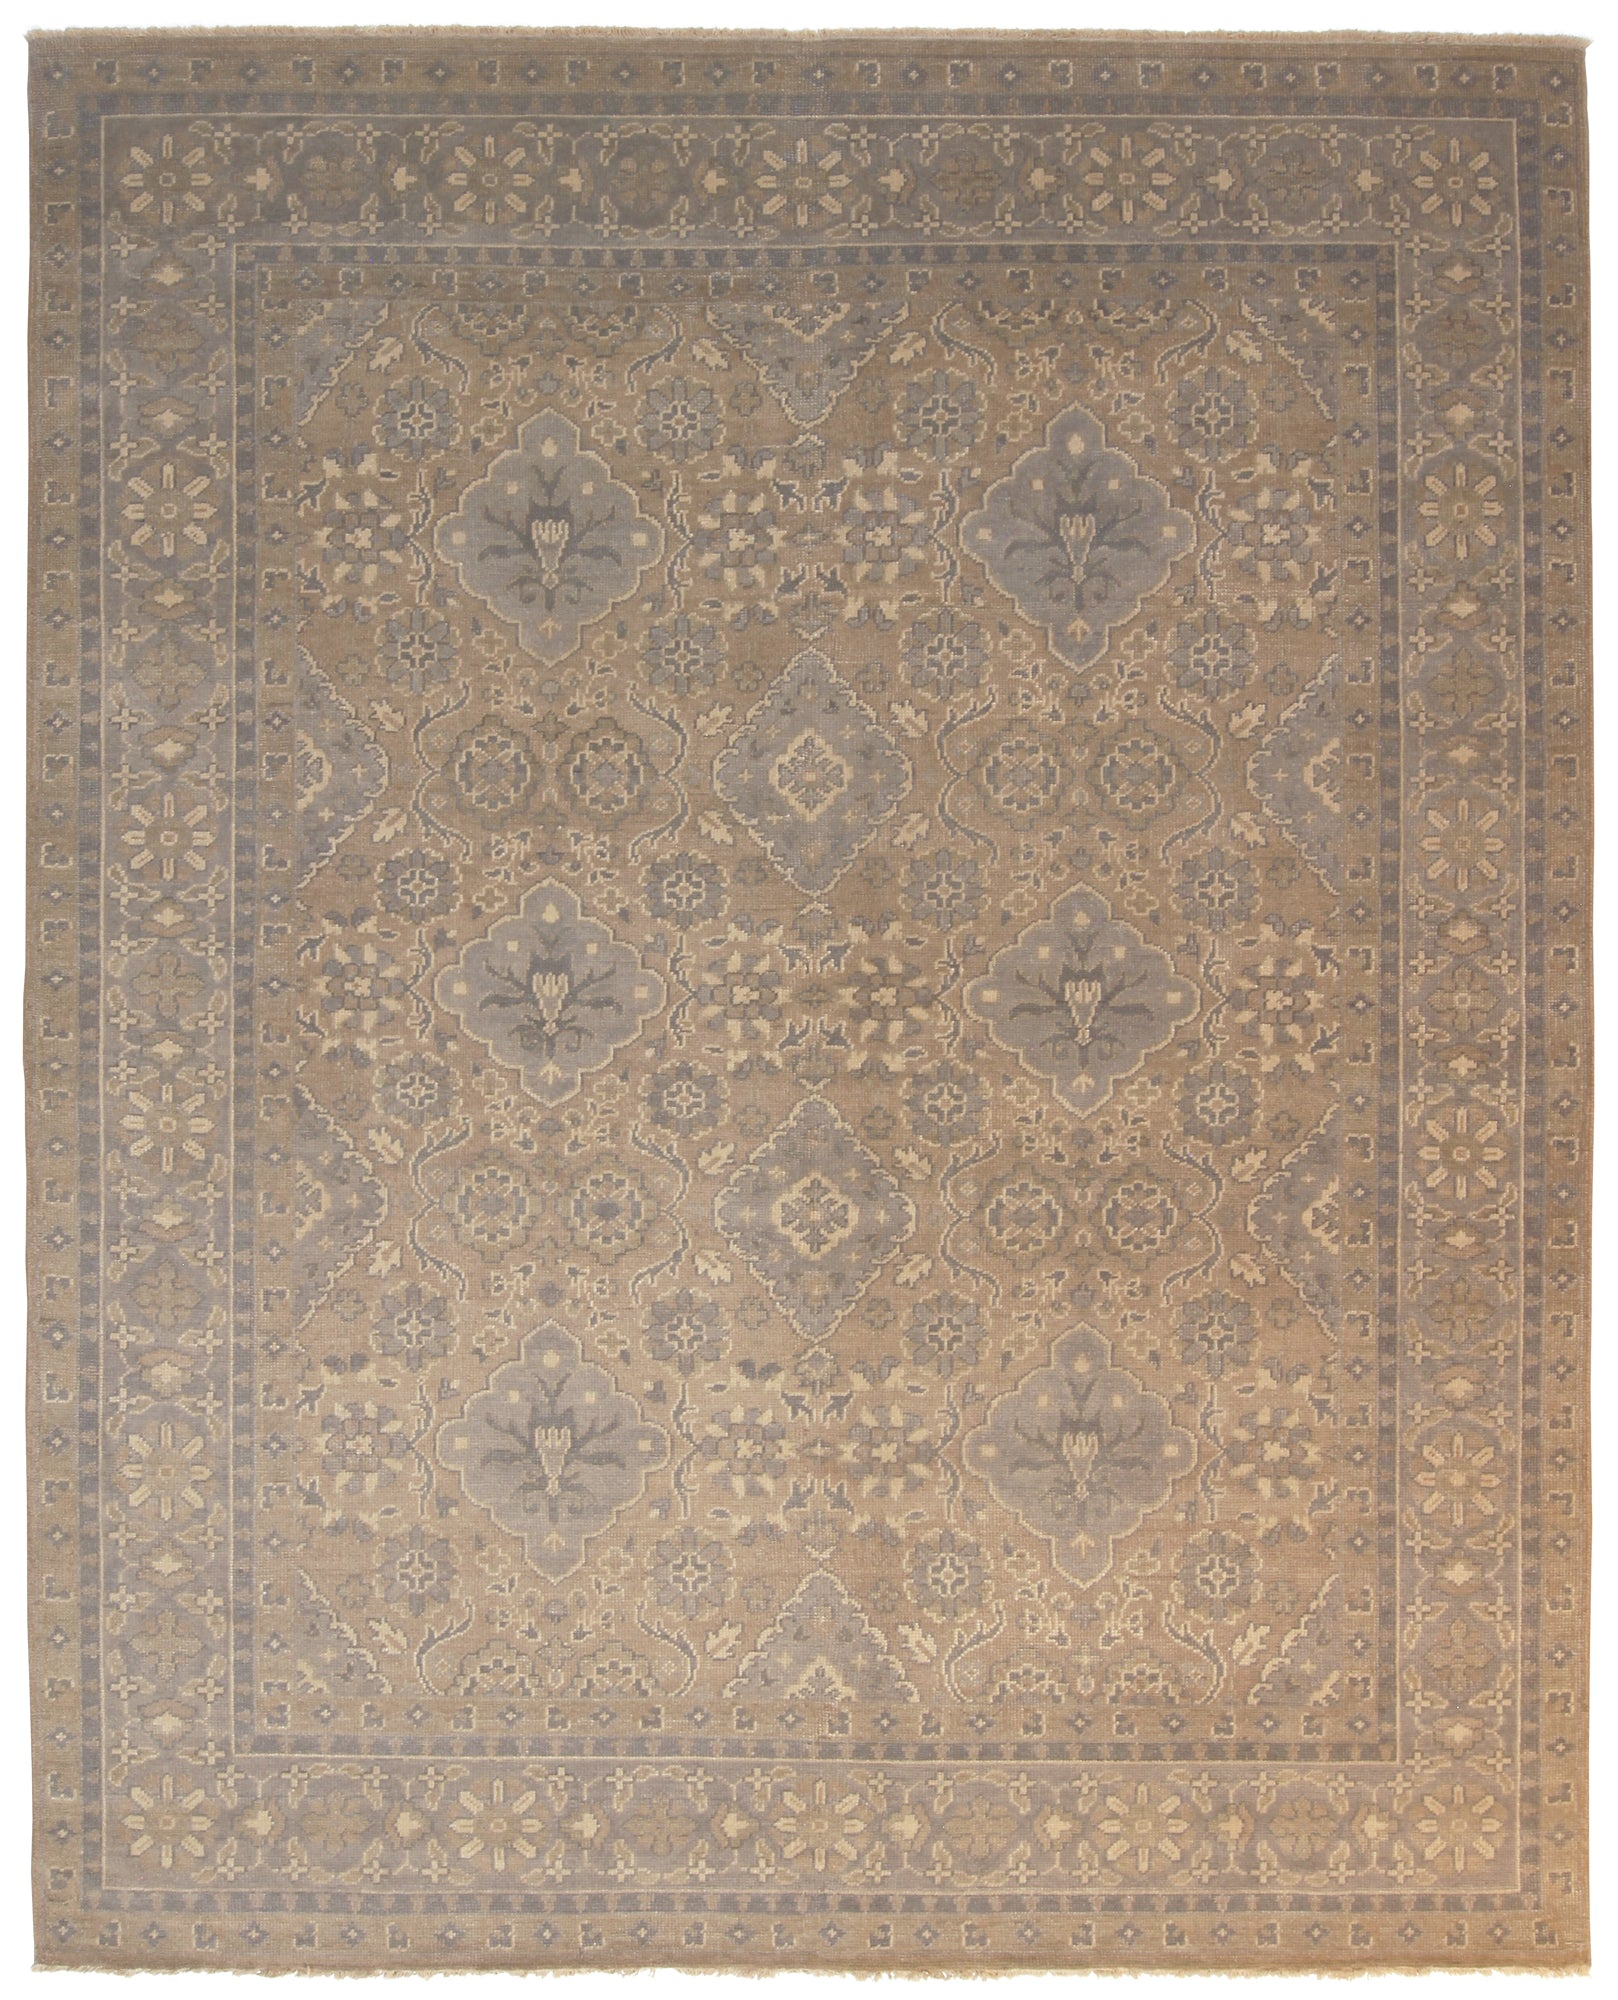 Anatolia Design Rug India-Turco Persian Rug Company Inc.